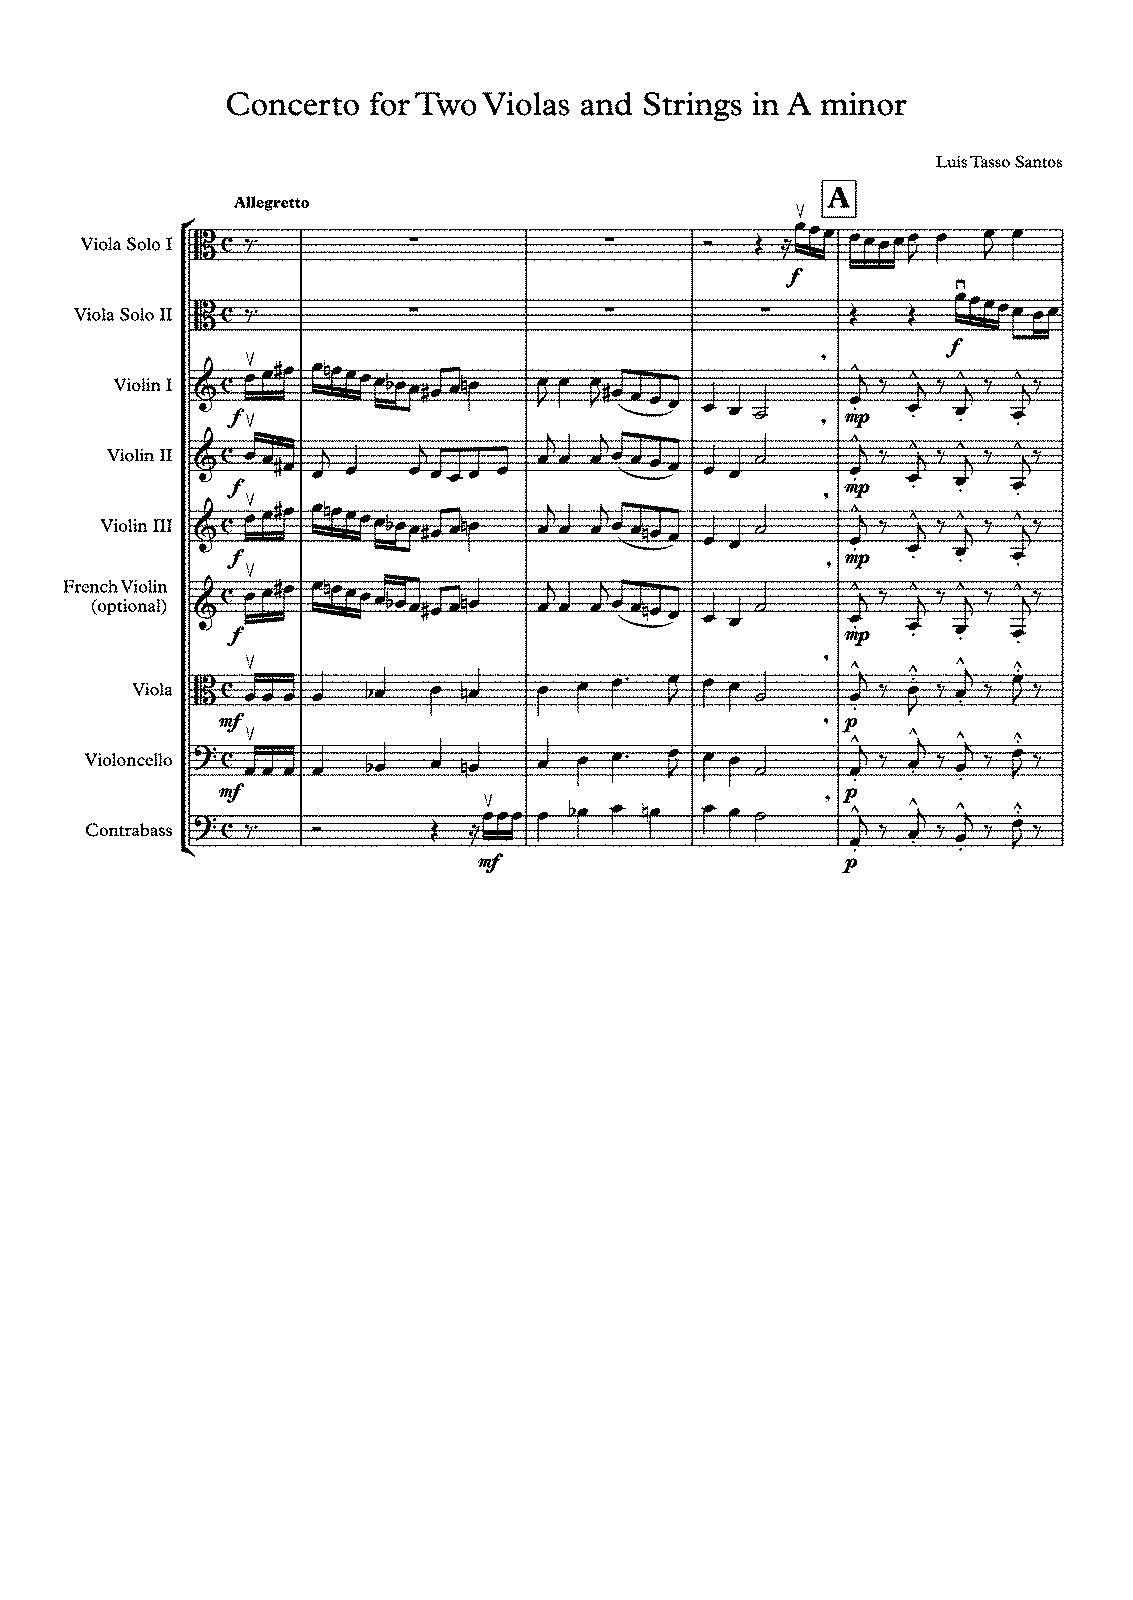 PMLP425215-Concerto for two Violas and Strings - Full Score.pdf